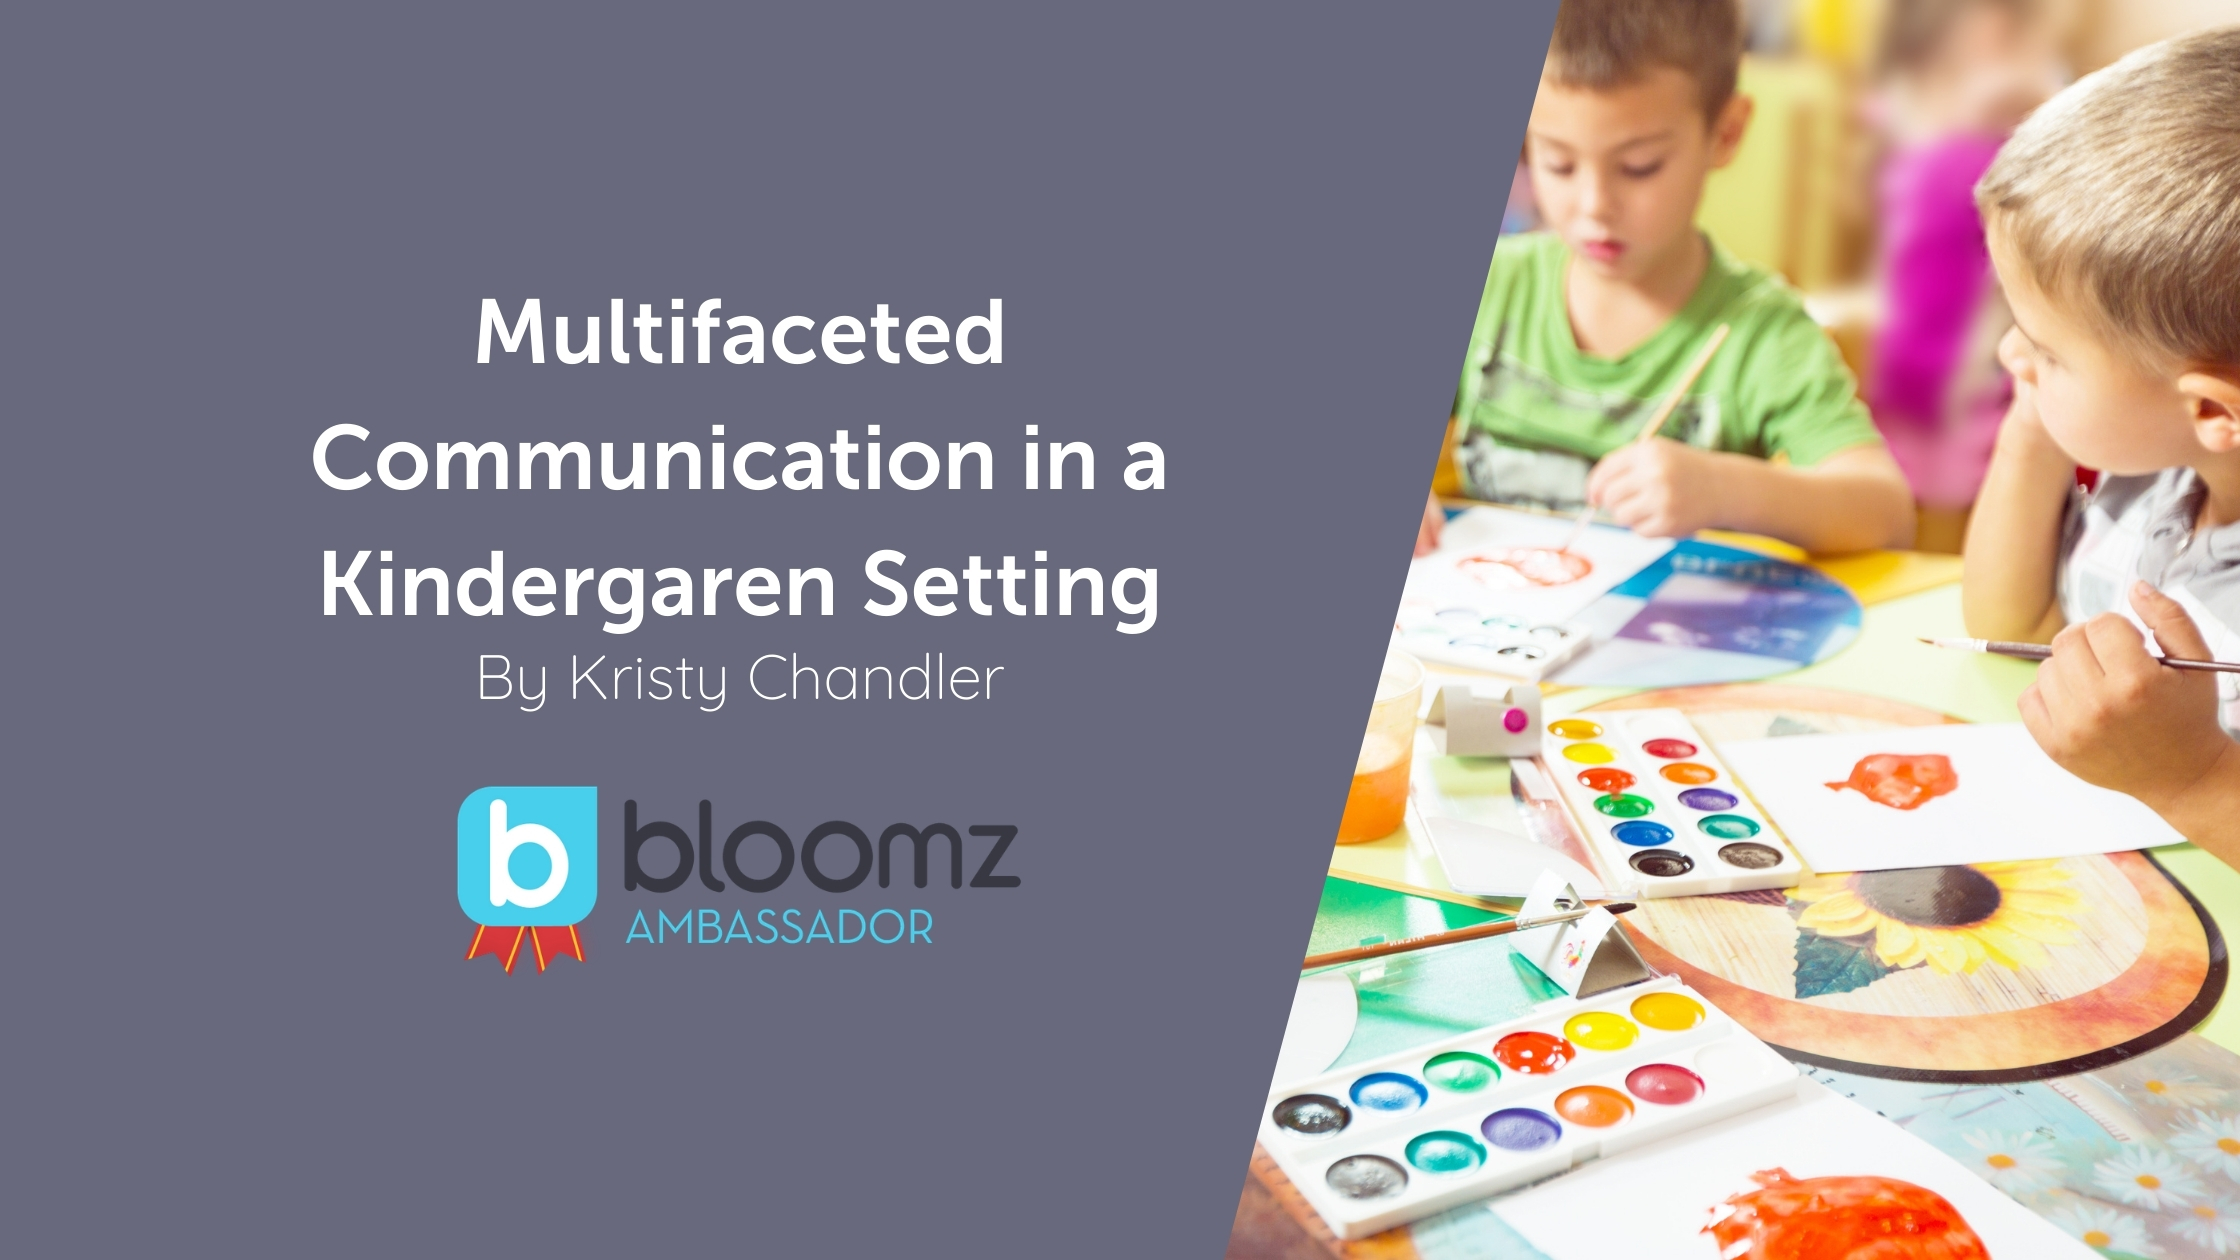 Multifaceted Communication in a Kindergarten Setting